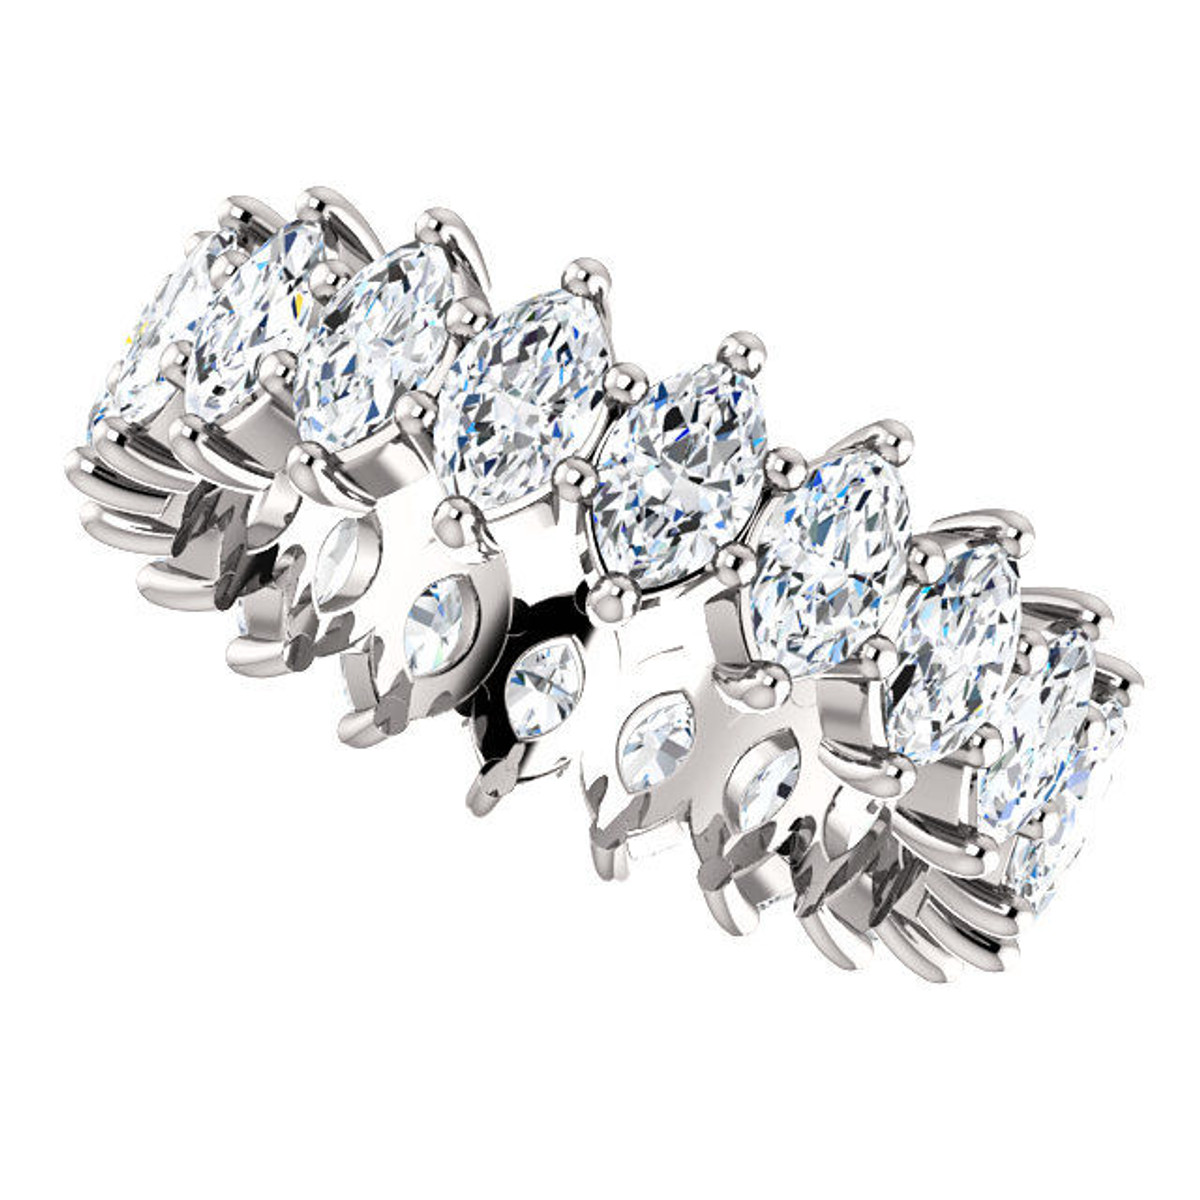 White Gold 4.0 ct tw Marquise Eternity Ring